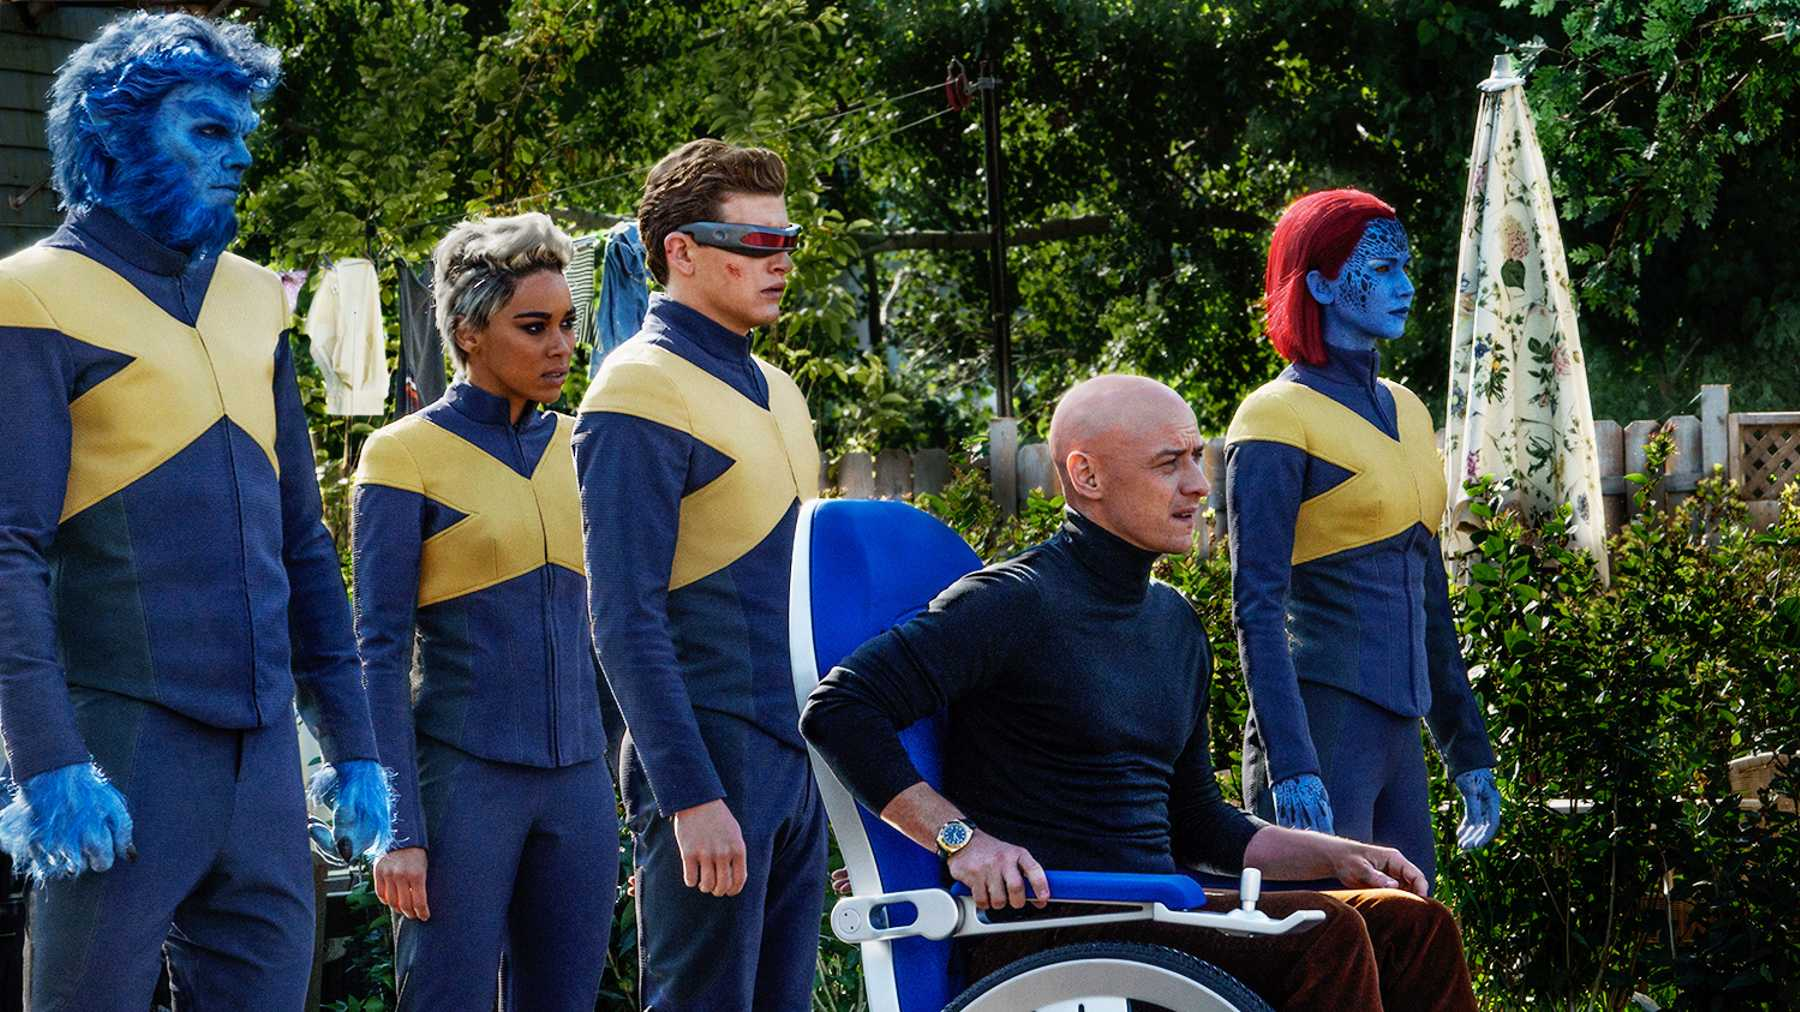 X-Men characters in Dark Phoenix